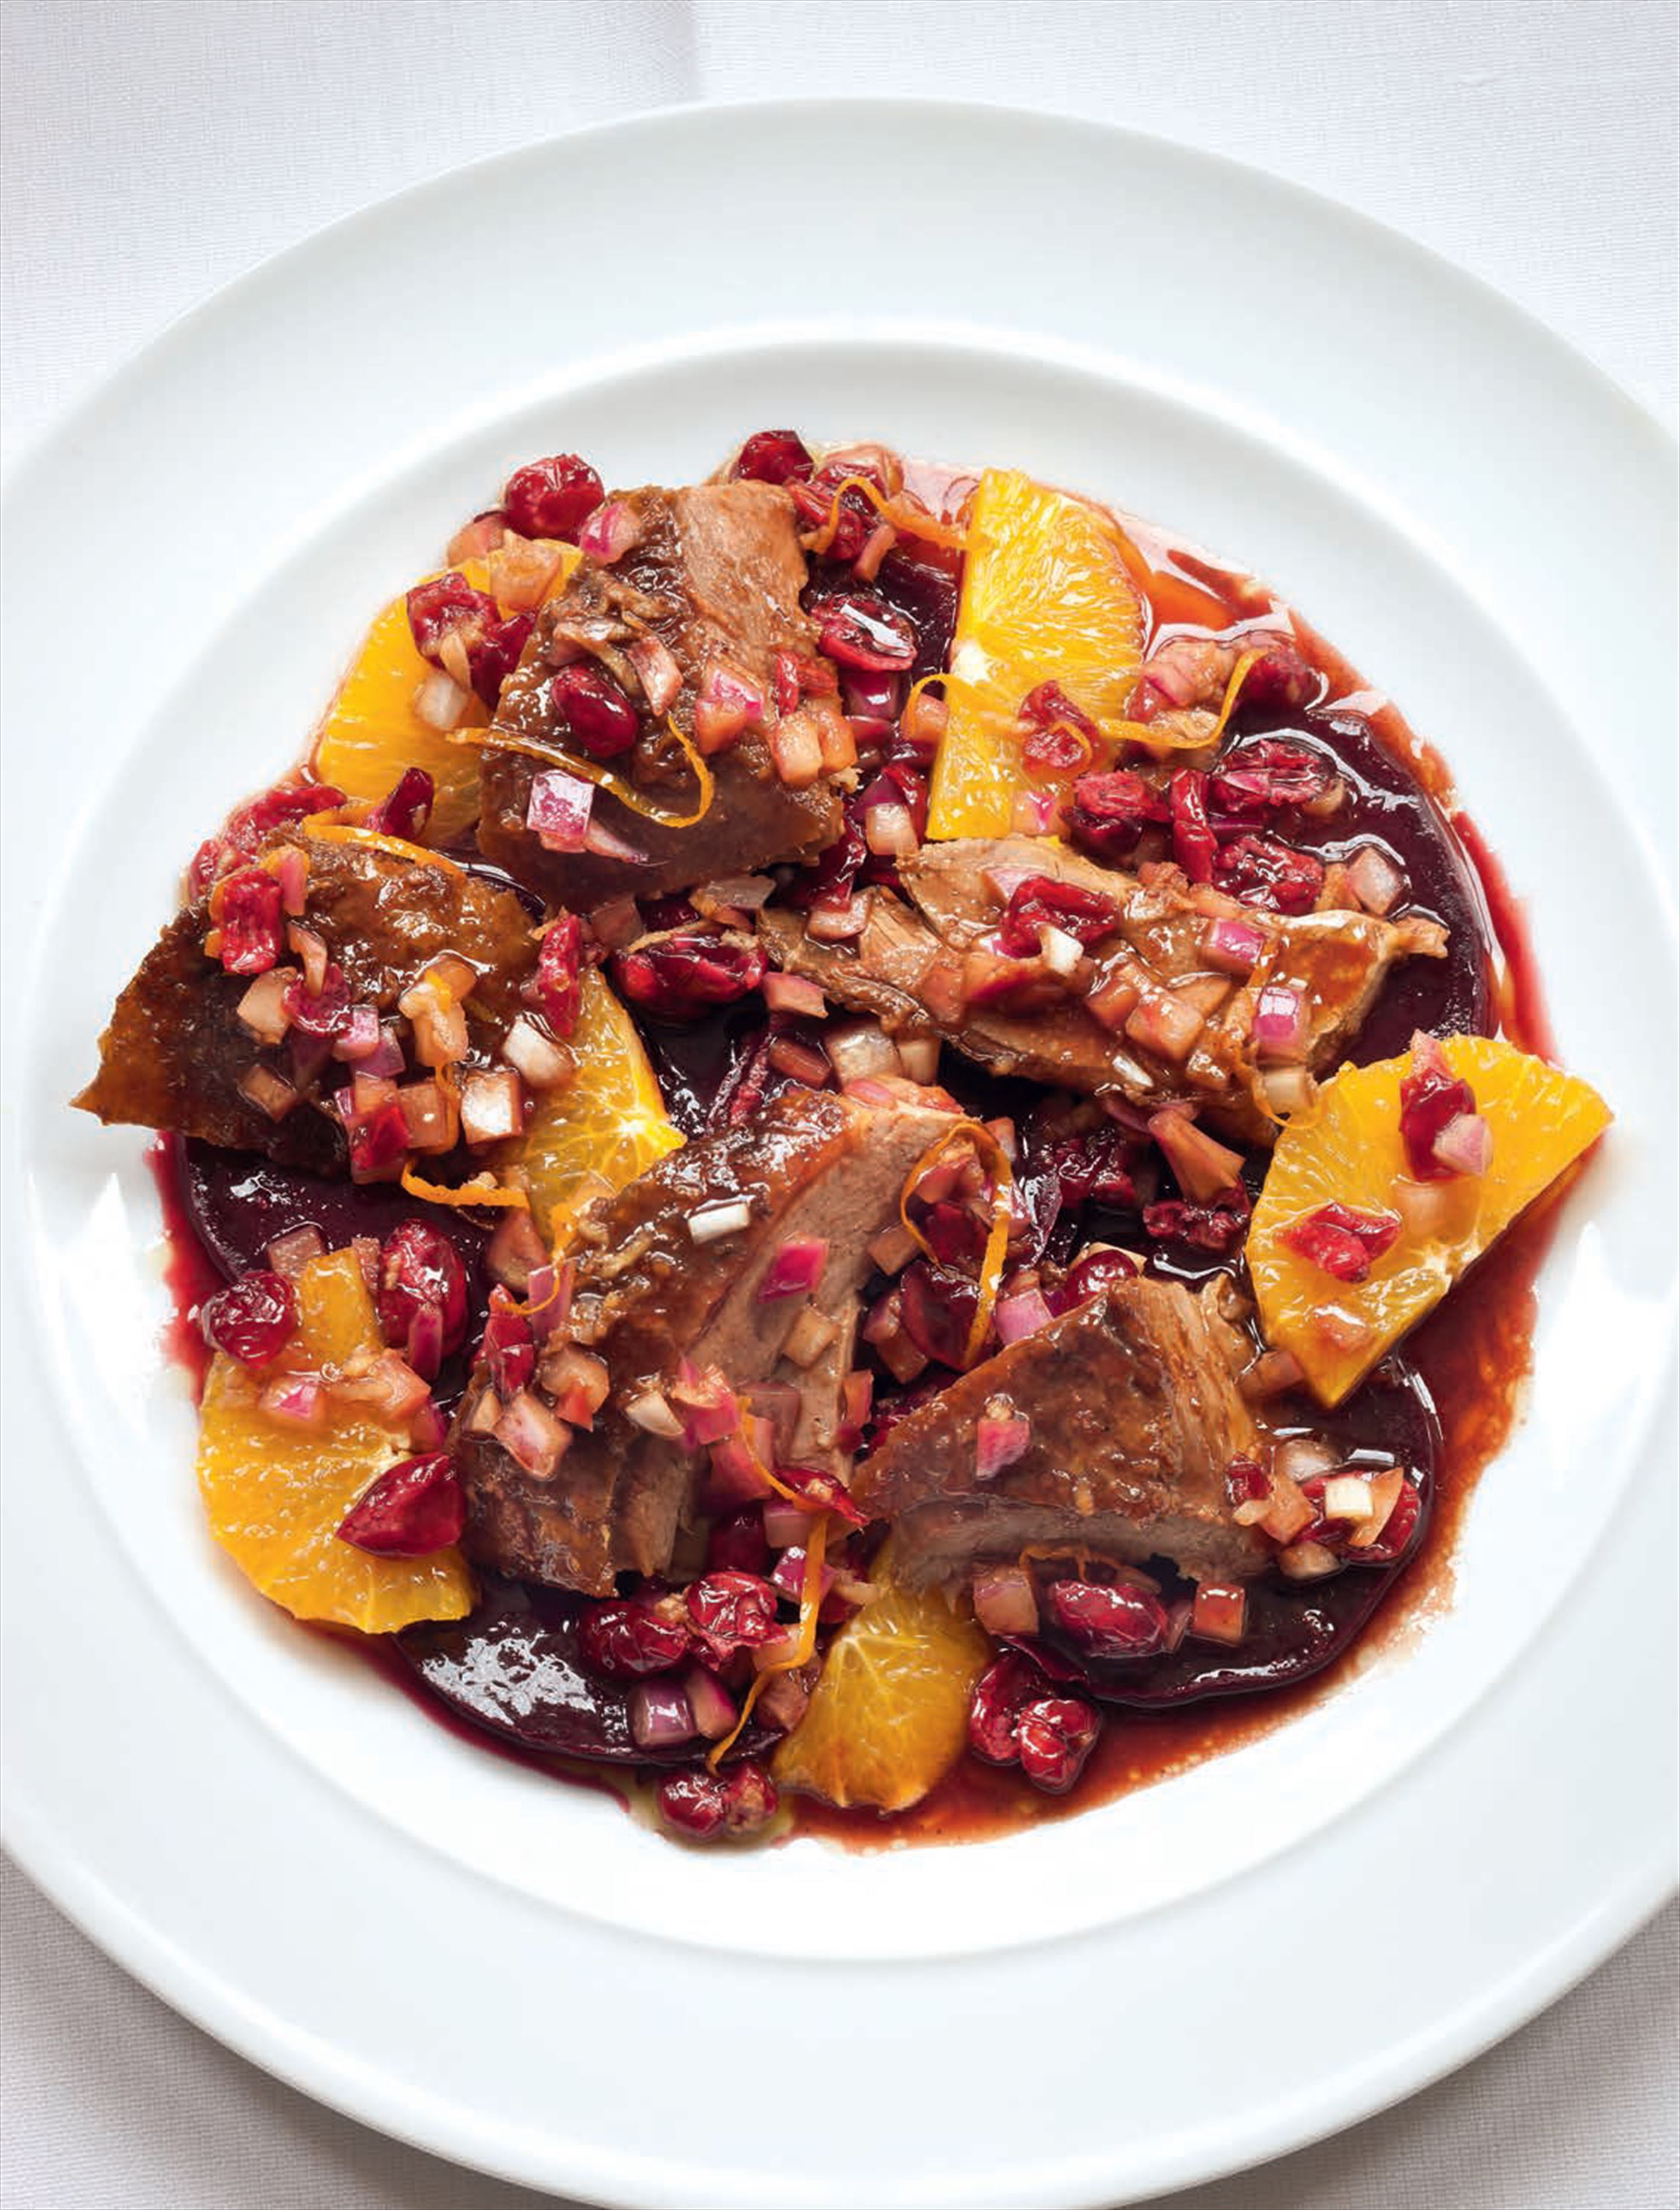 Warm duck, beetroot & orange salad with cranberry salsa